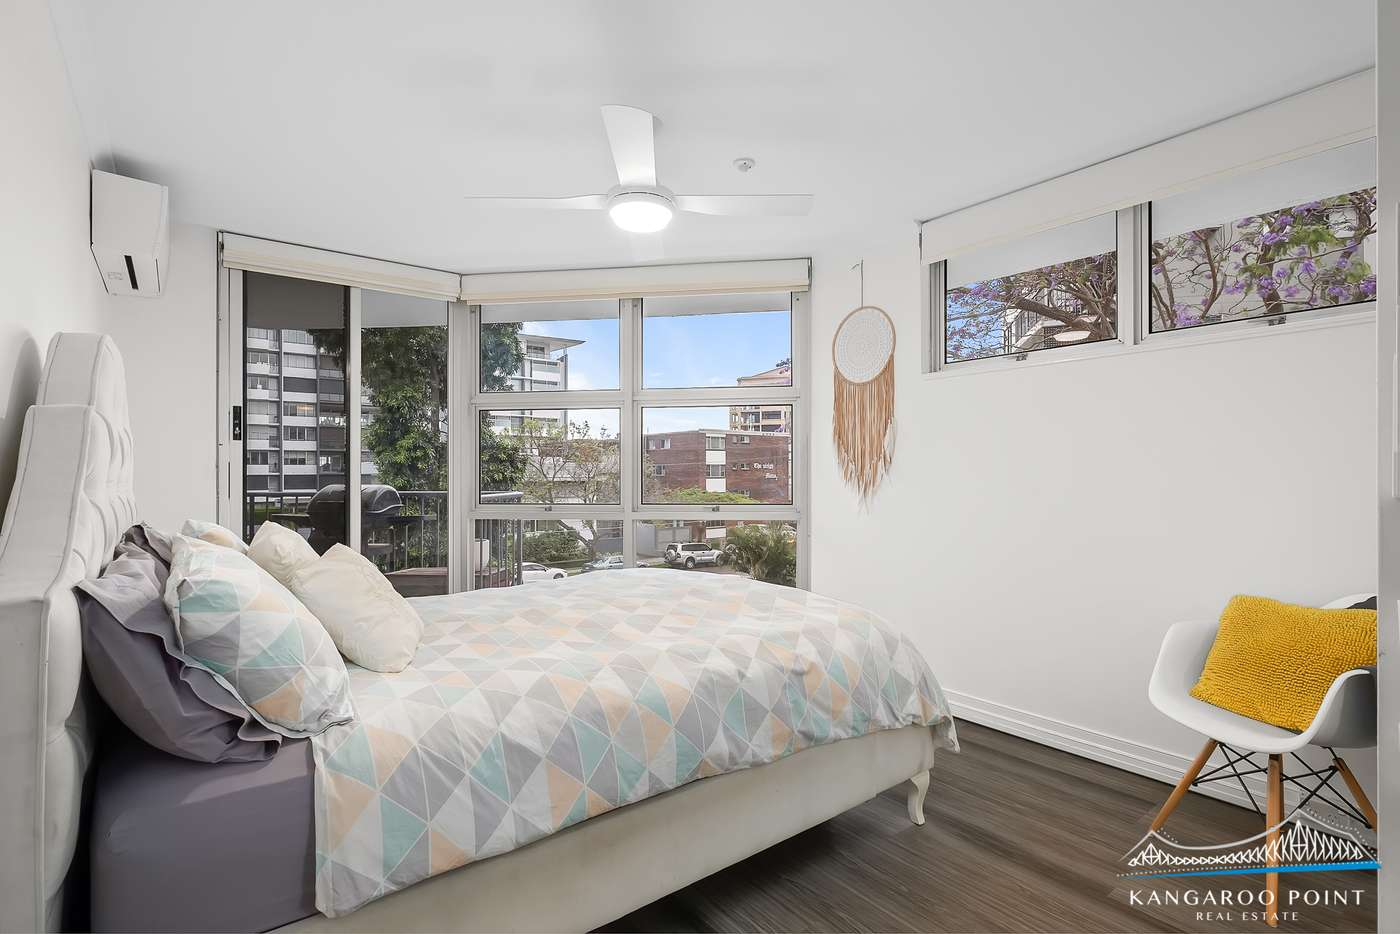 Fifth view of Homely apartment listing, 55 Thorn Street, Kangaroo Point QLD 4169